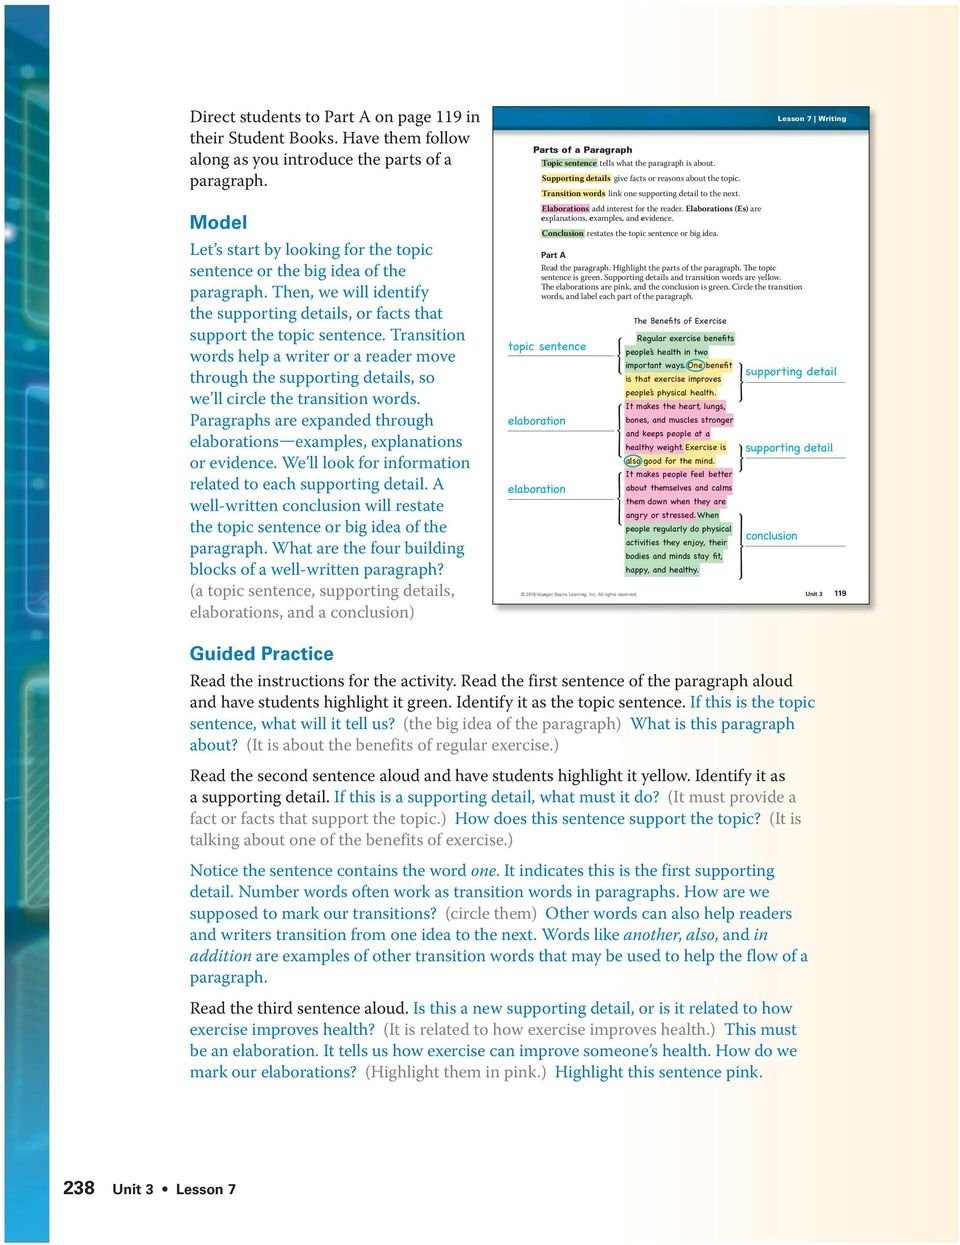 direct students to page 100 in their student books use the pdf transition words help a writer or a reader move through the supporting details so we